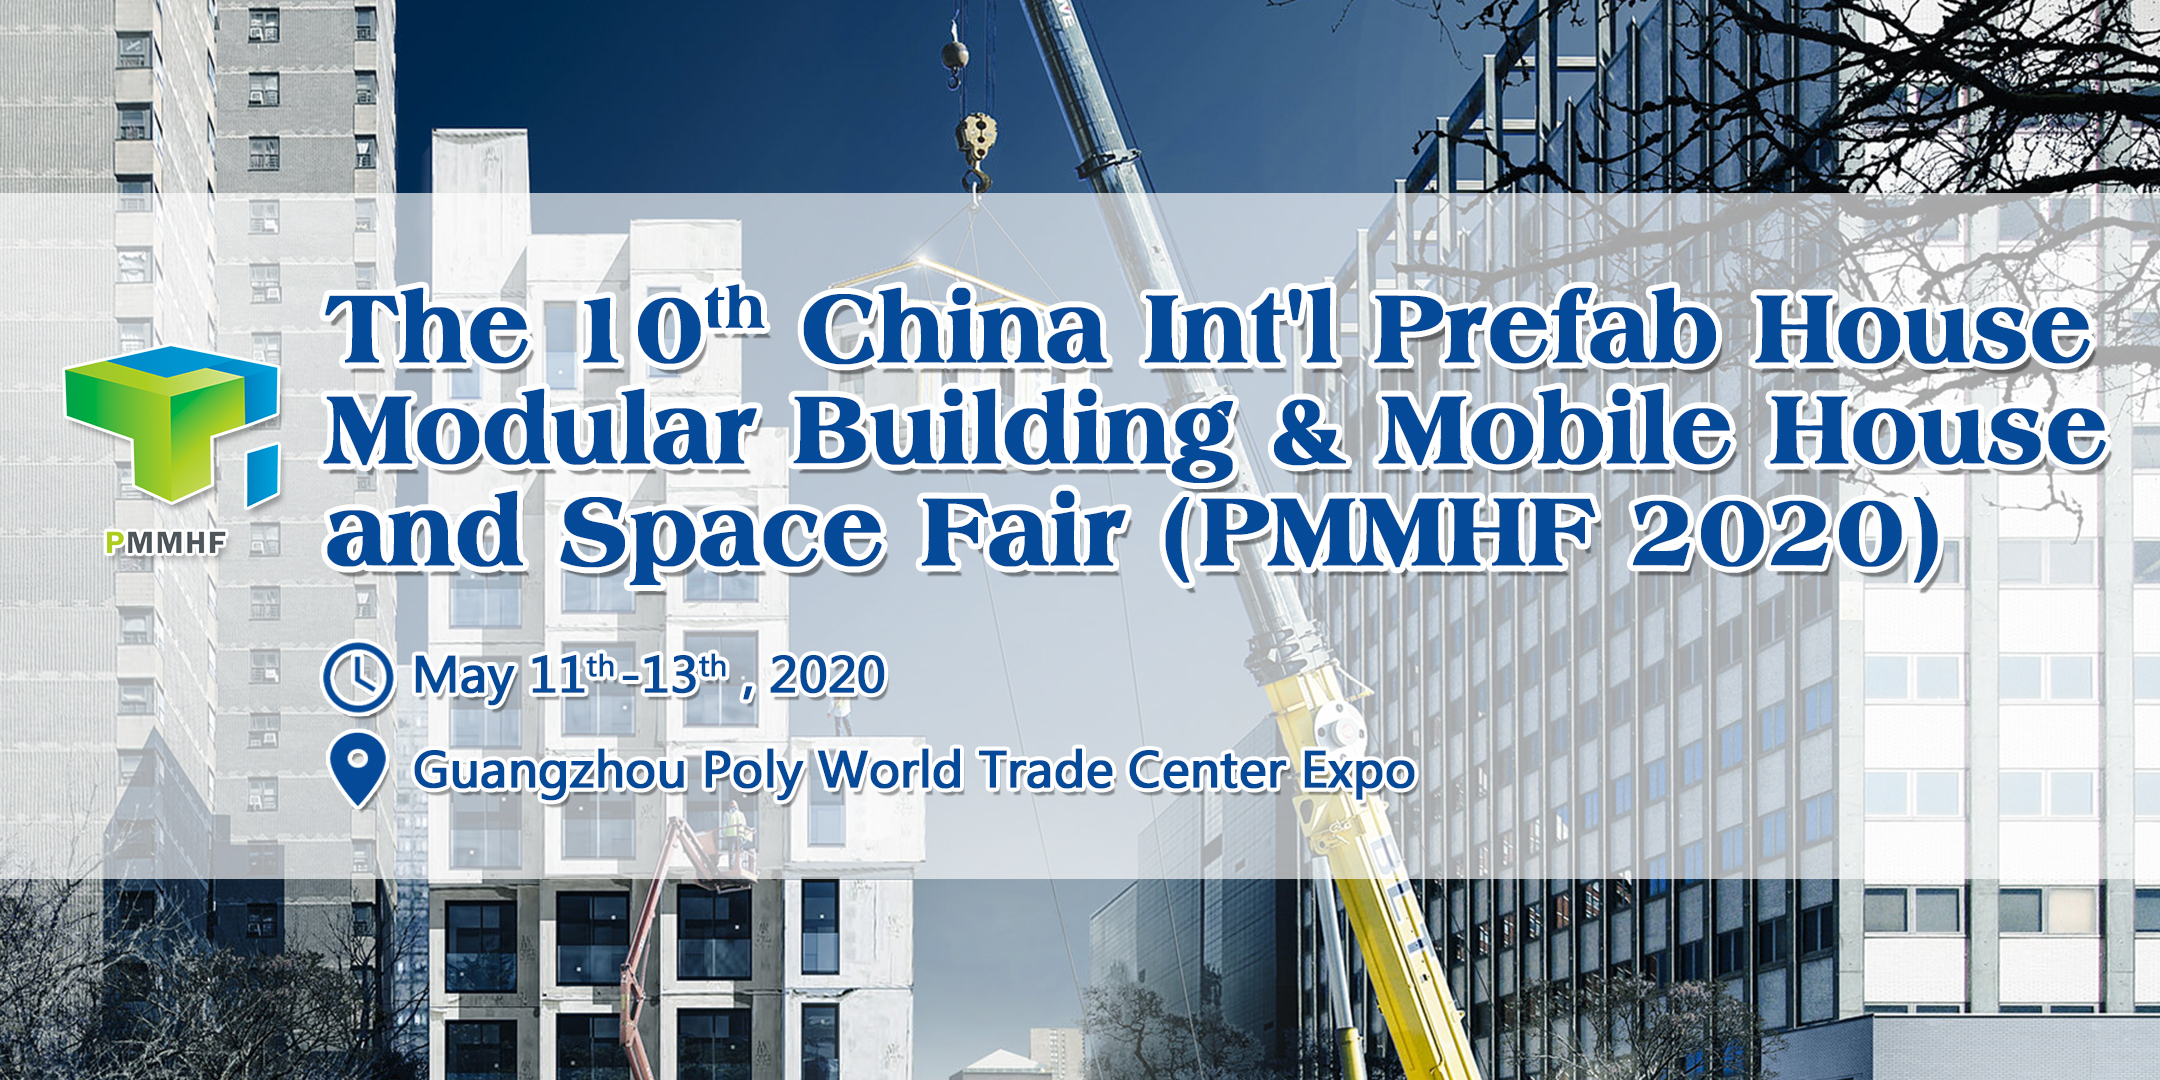 The 10th China Prefab House, Modular Building, Mobile House & Space Fair (PMMHF 2020), Guangzhou, Guangdong, China